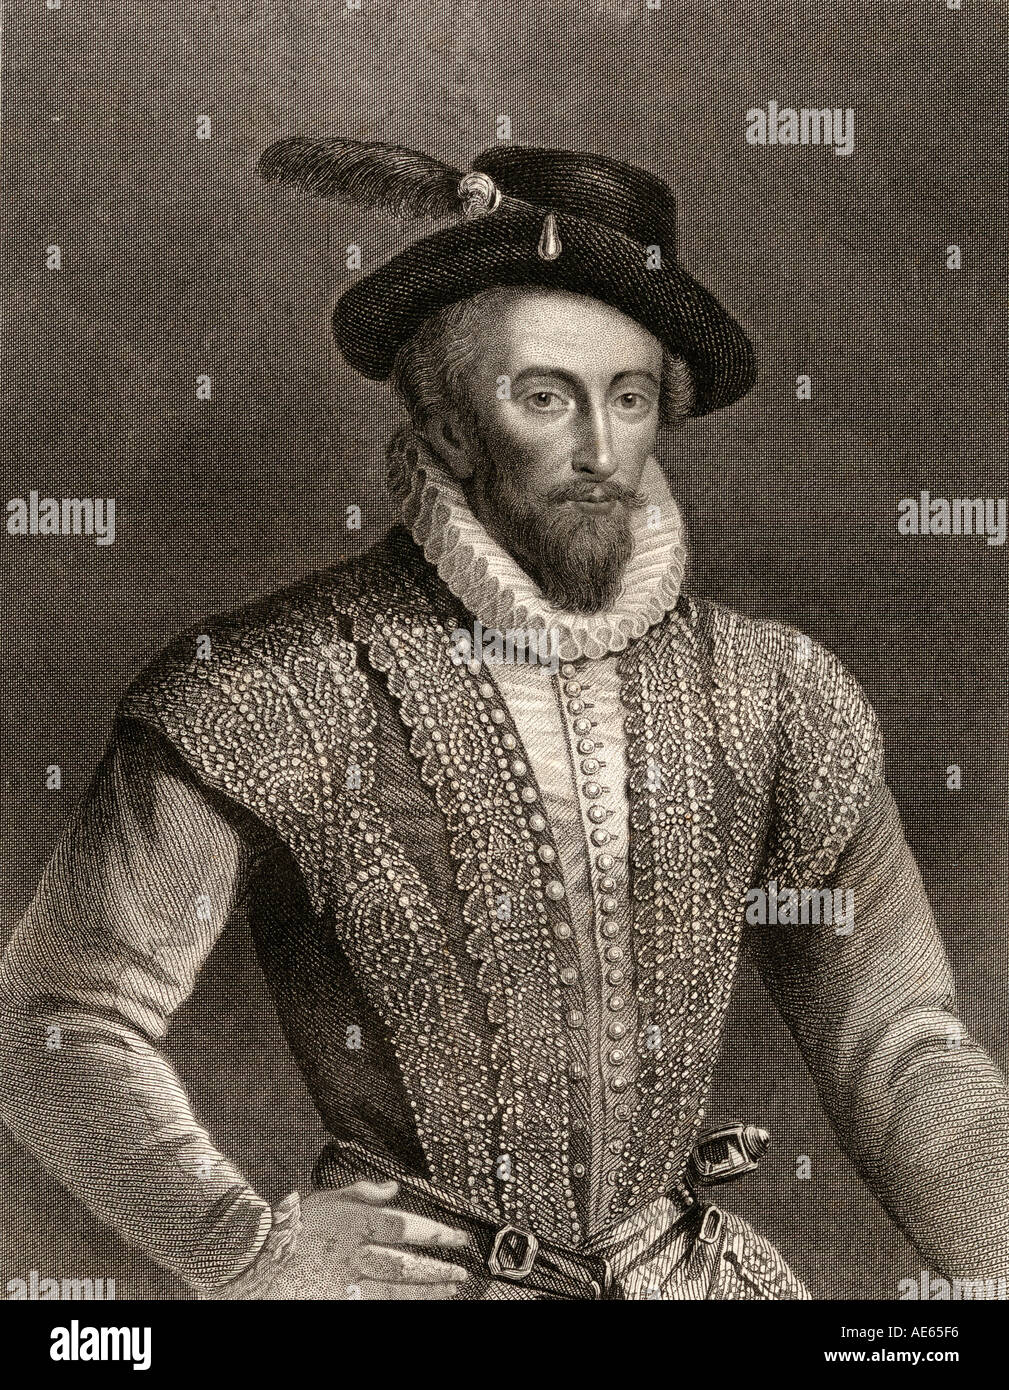 Sir Walter Raleigh, c 1554 - 1618.English landed gentleman, writer, poet, soldier, politician, courtier, spy and explorer. Engraved by W Holl - Stock Image